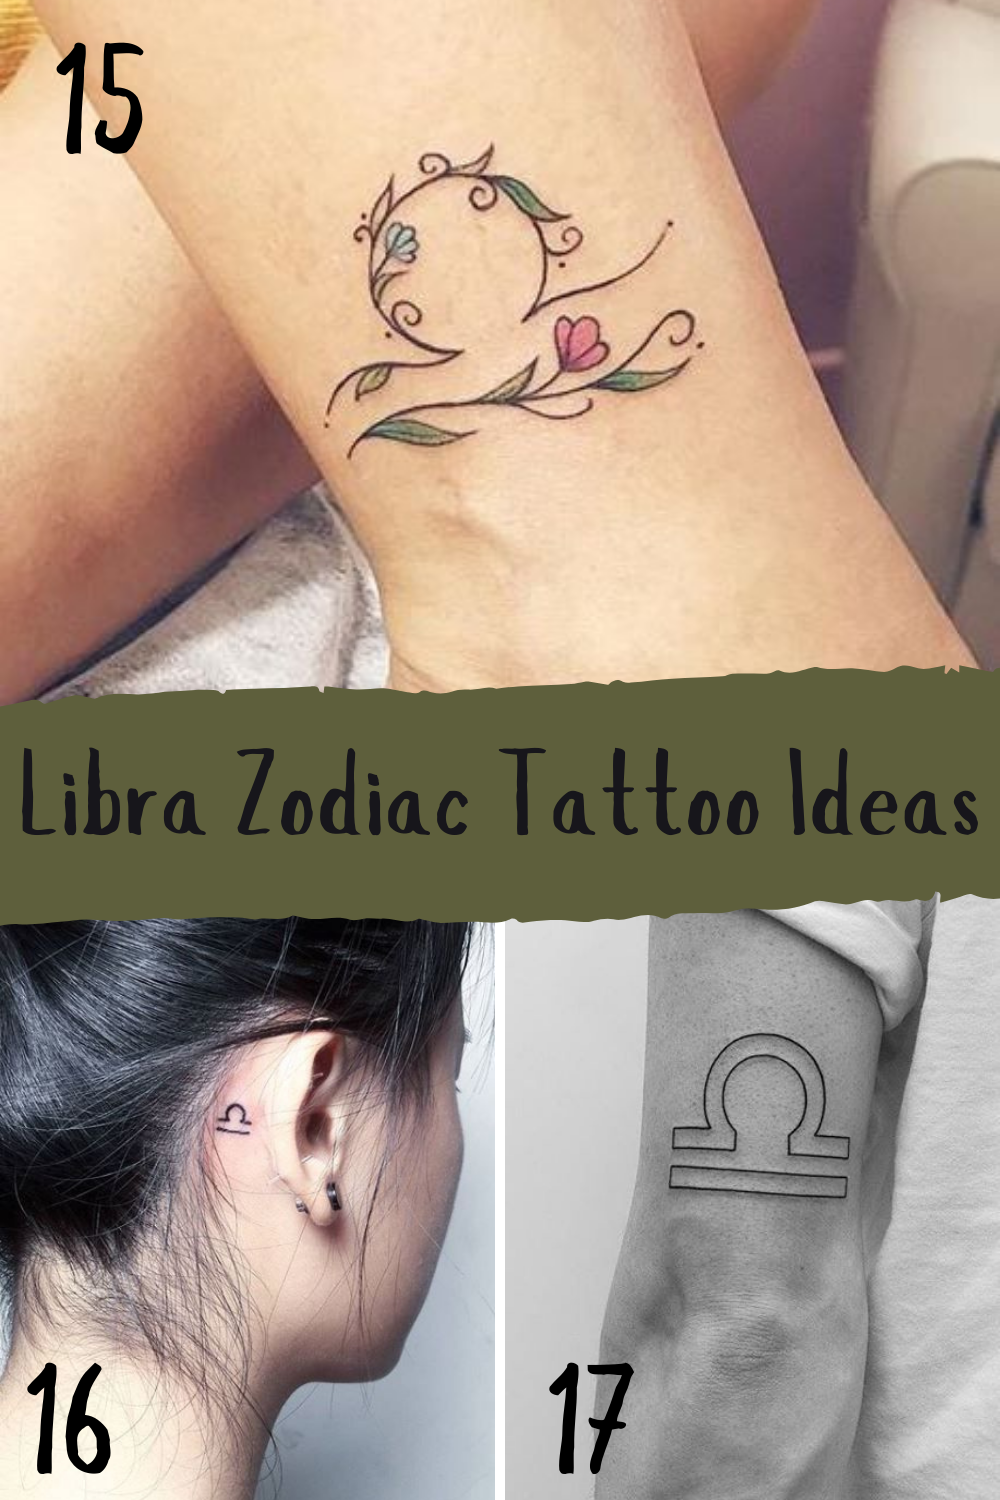 Libra Zodiac tattoo ideas